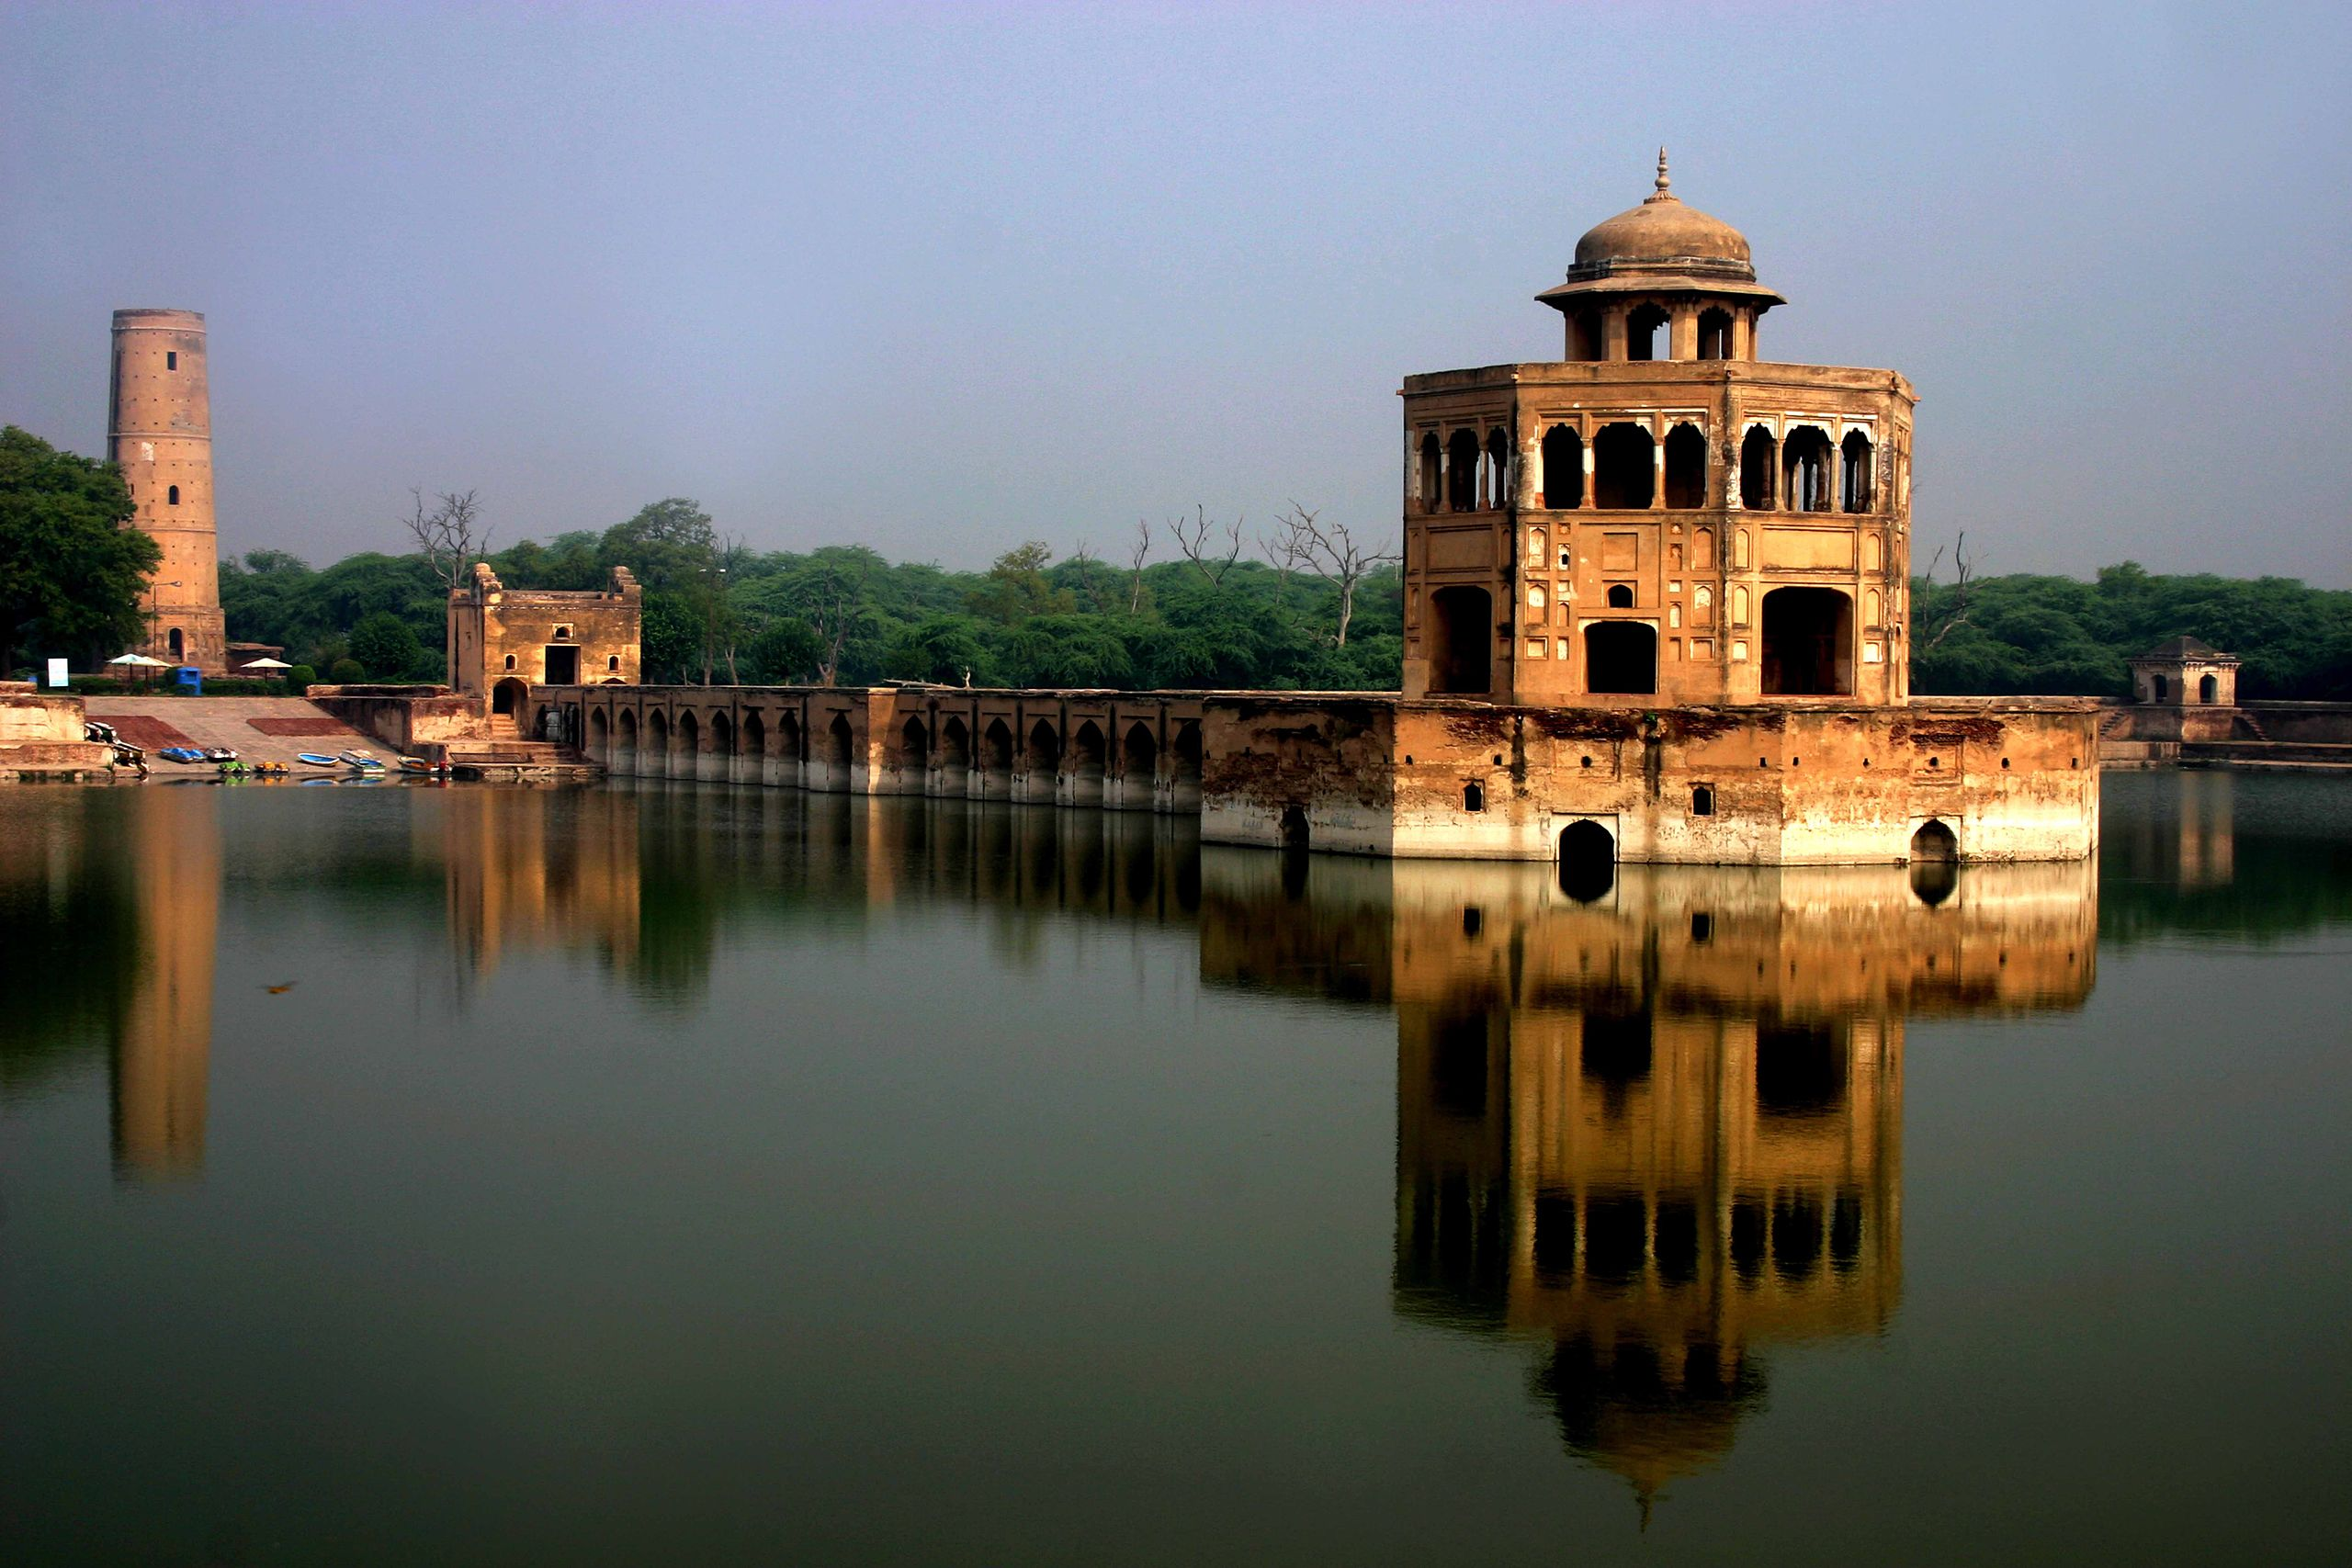 South Asia Travel Guide